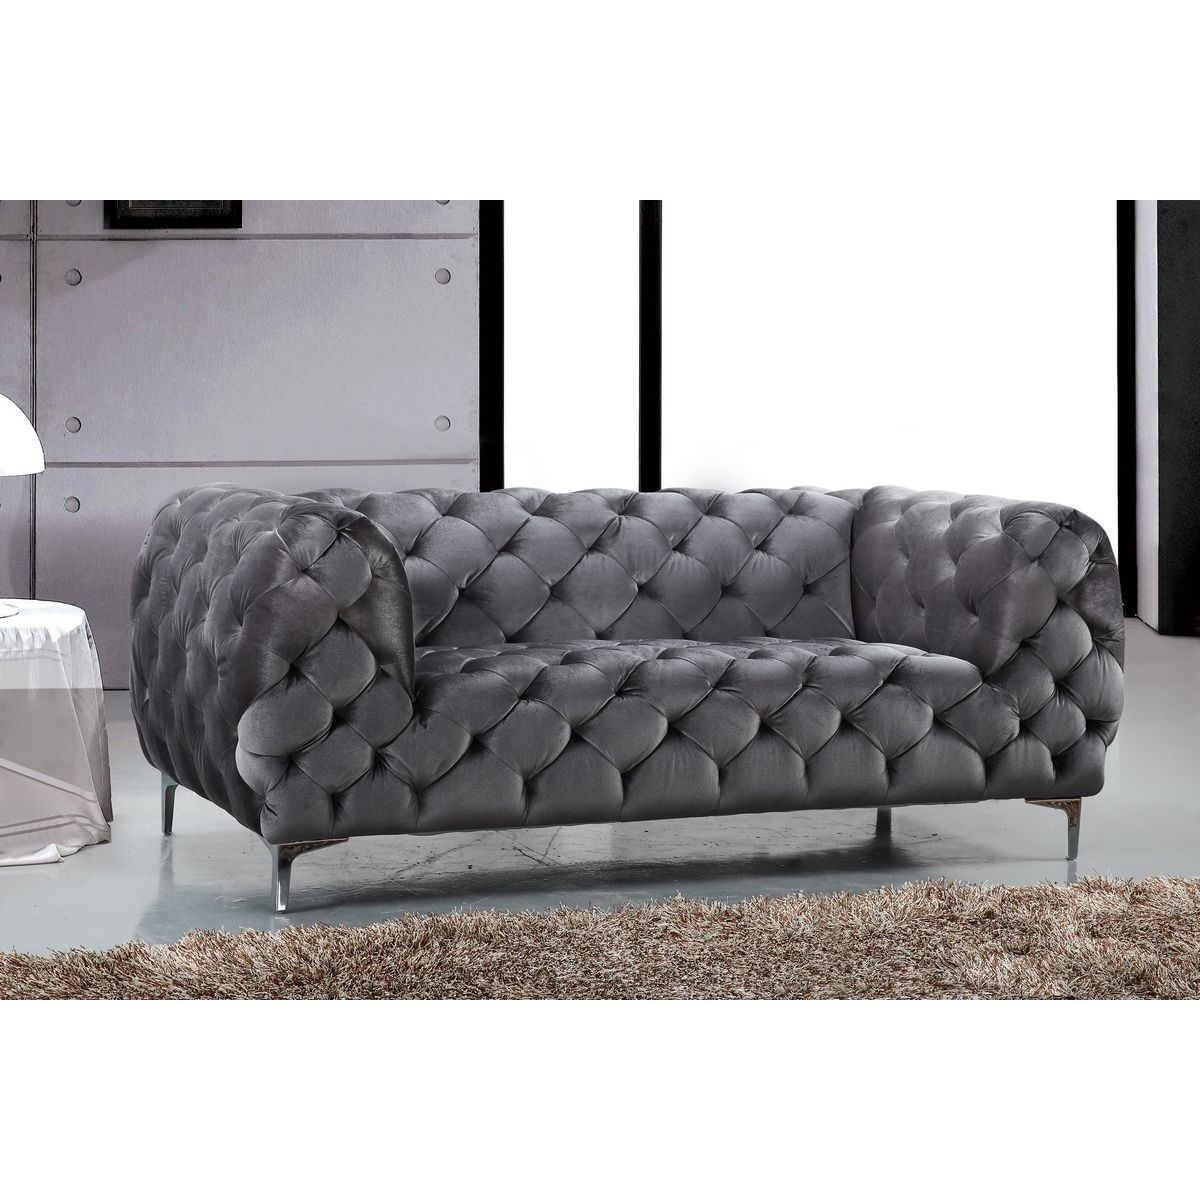 Furniture : Reclining Sofa Kijiji London Chesterfield Sofa Feet Inside Fashionable Kijiji London Sectional Sofas (View 7 of 20)